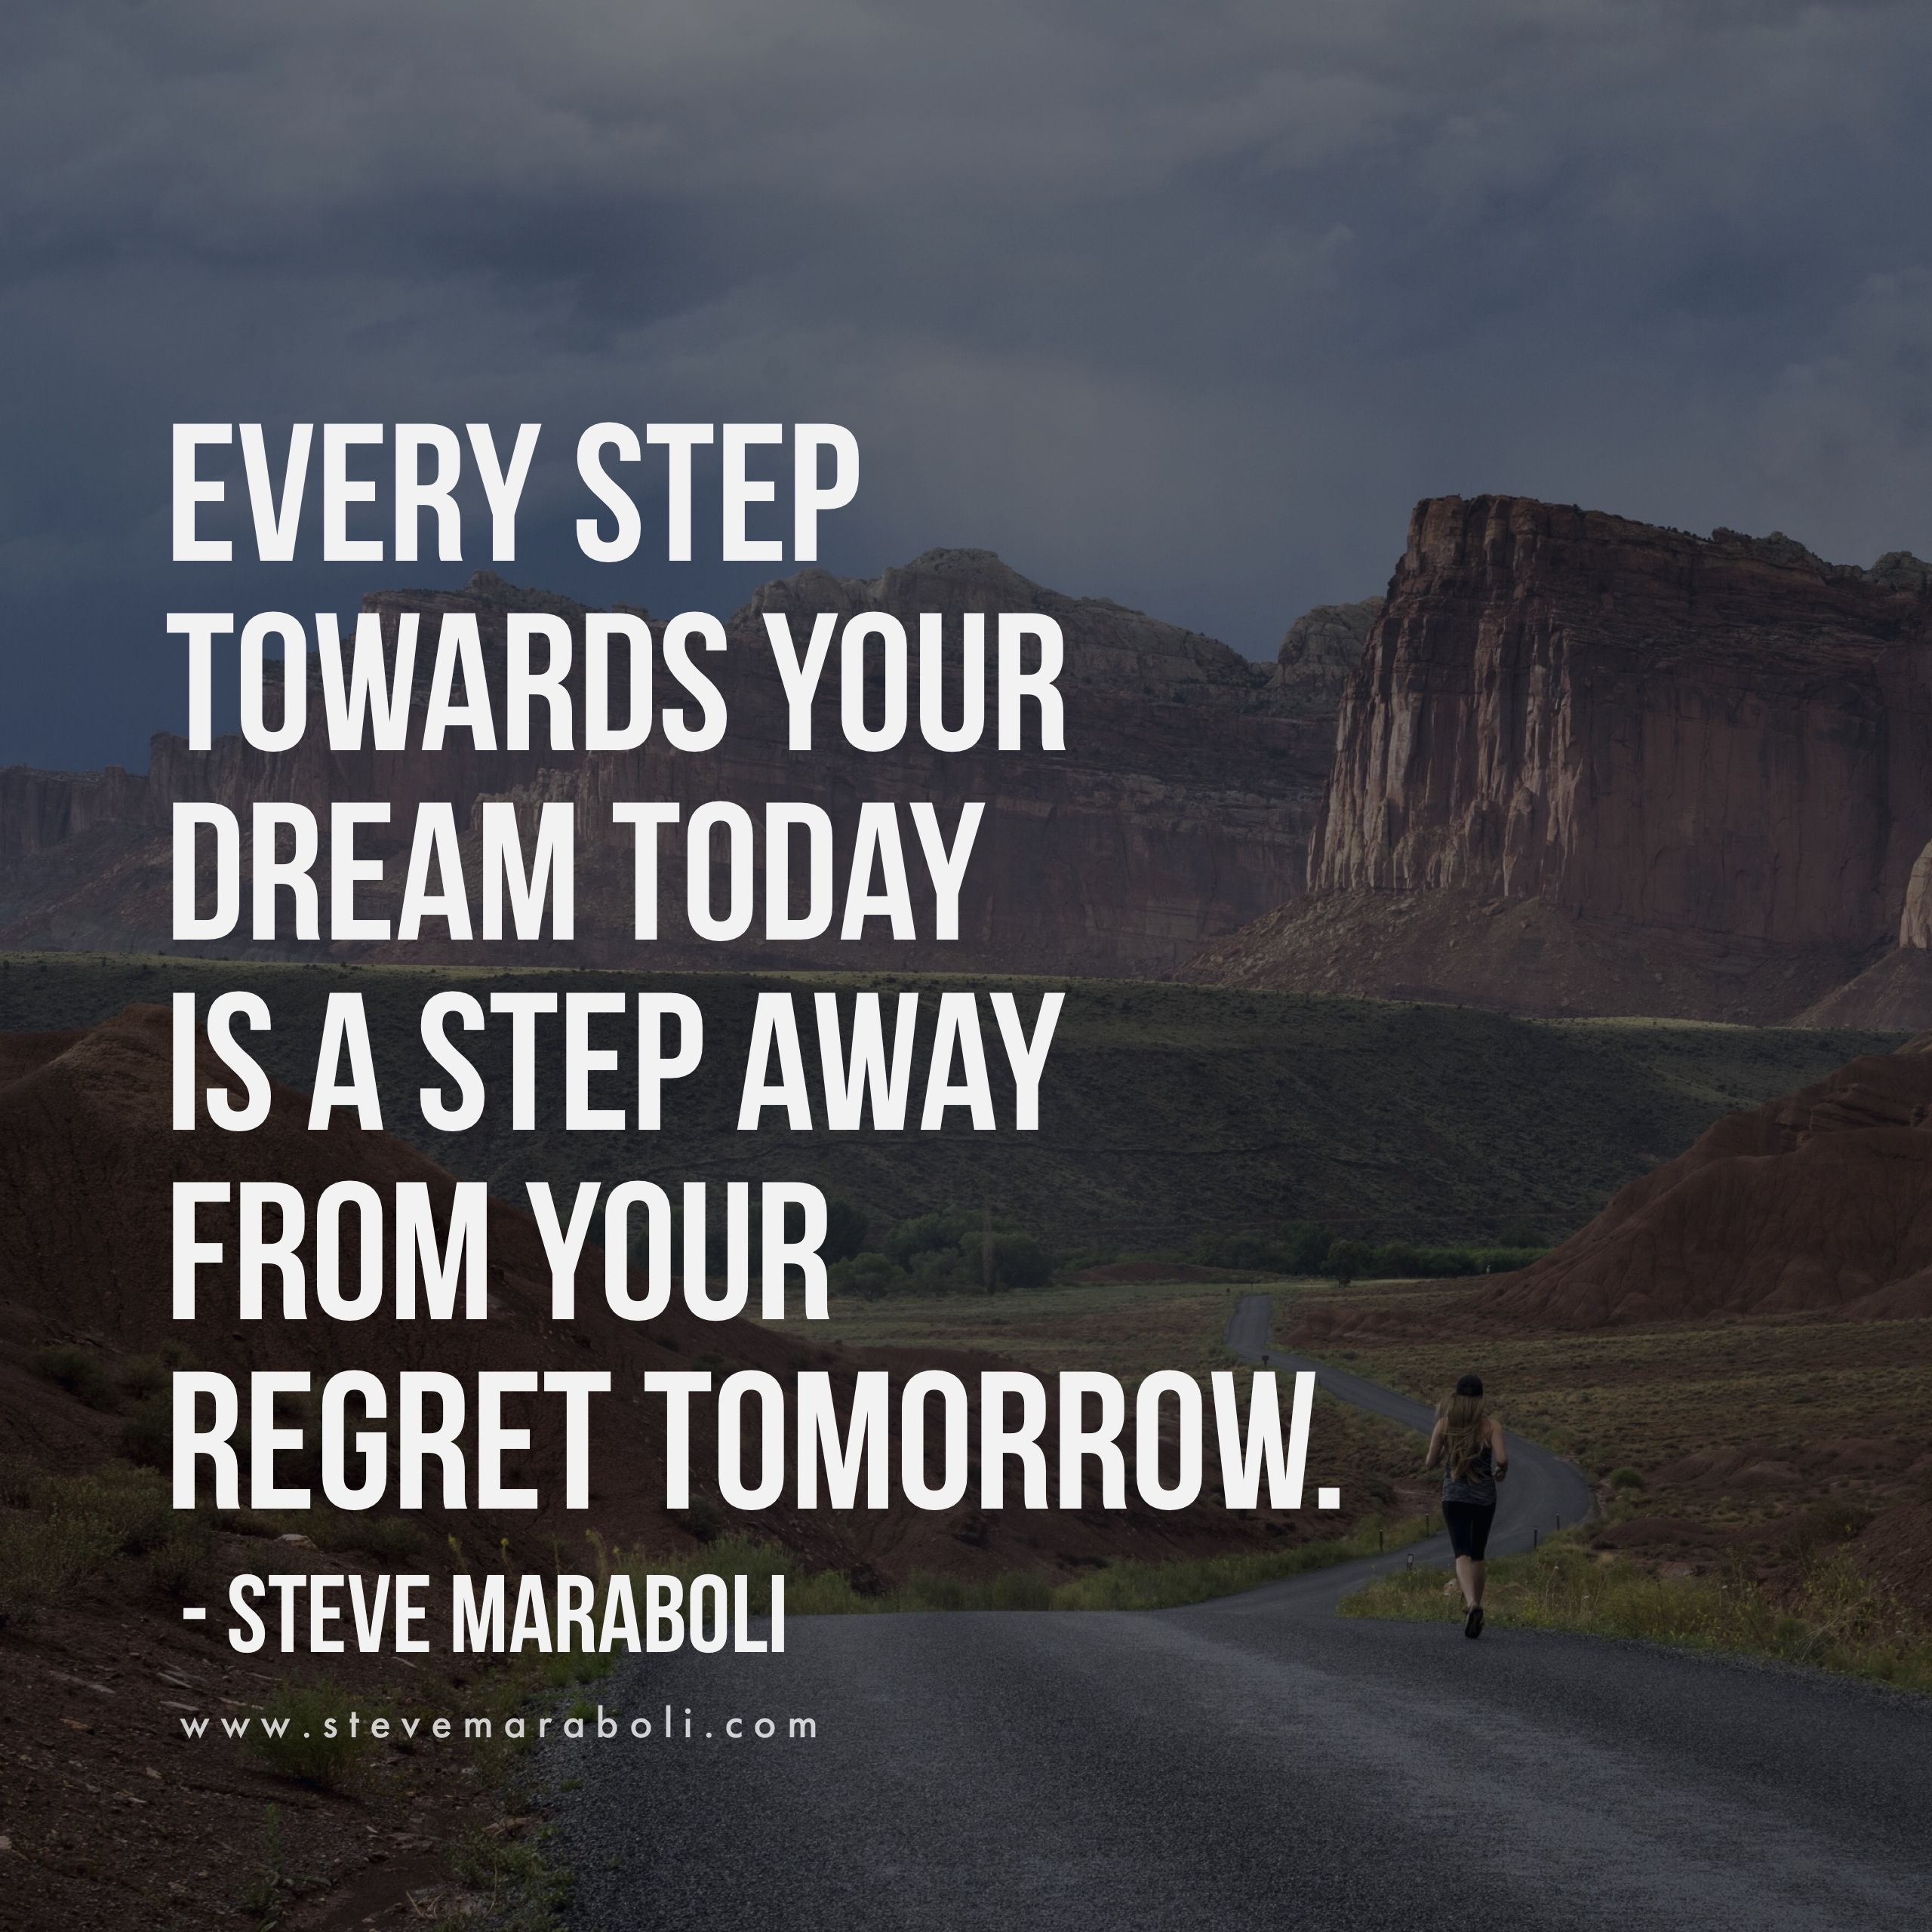 Ww Quotes Dreams And Goals Quotes  Steve Maraboli  Dreams & Goals